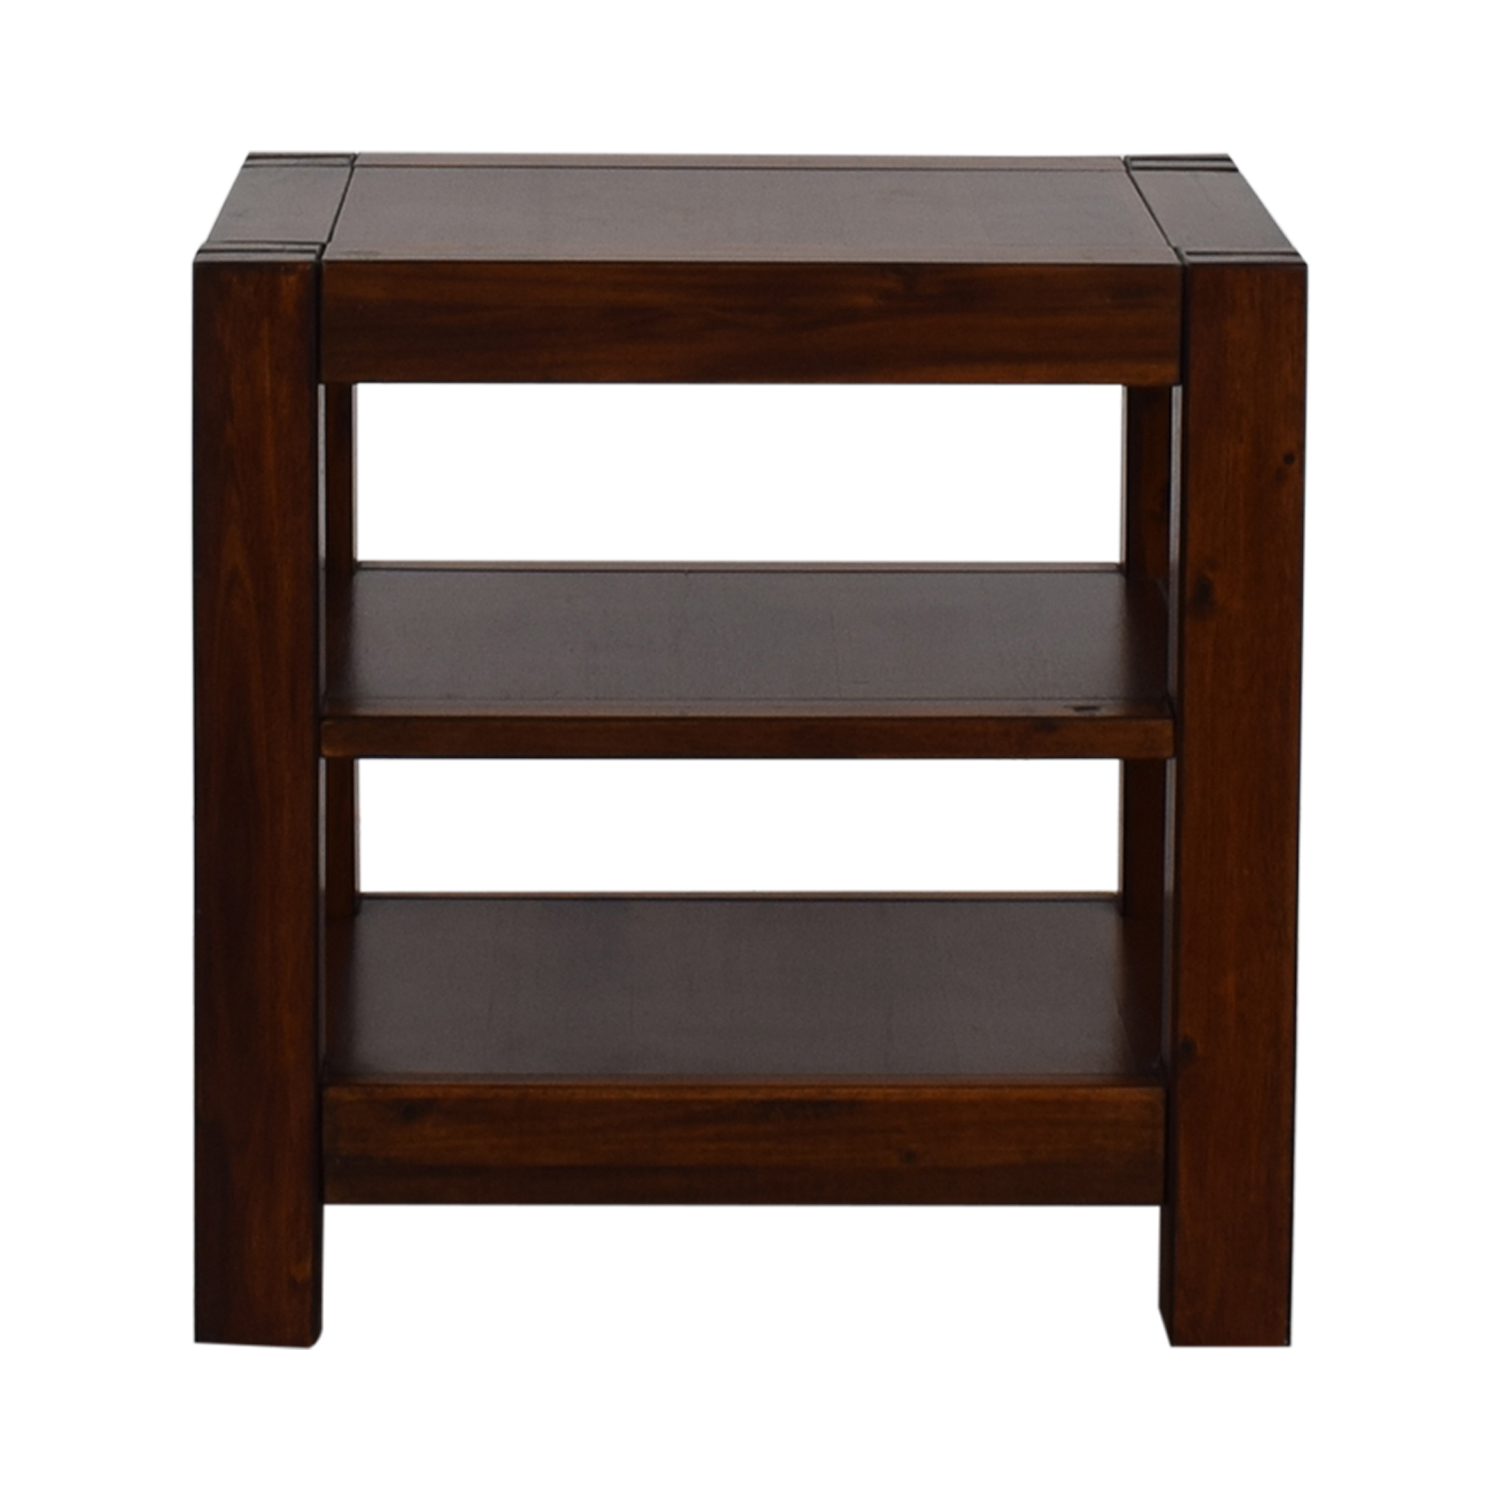 81 Off Jofran Jofran Furniture Wood End Table Tables